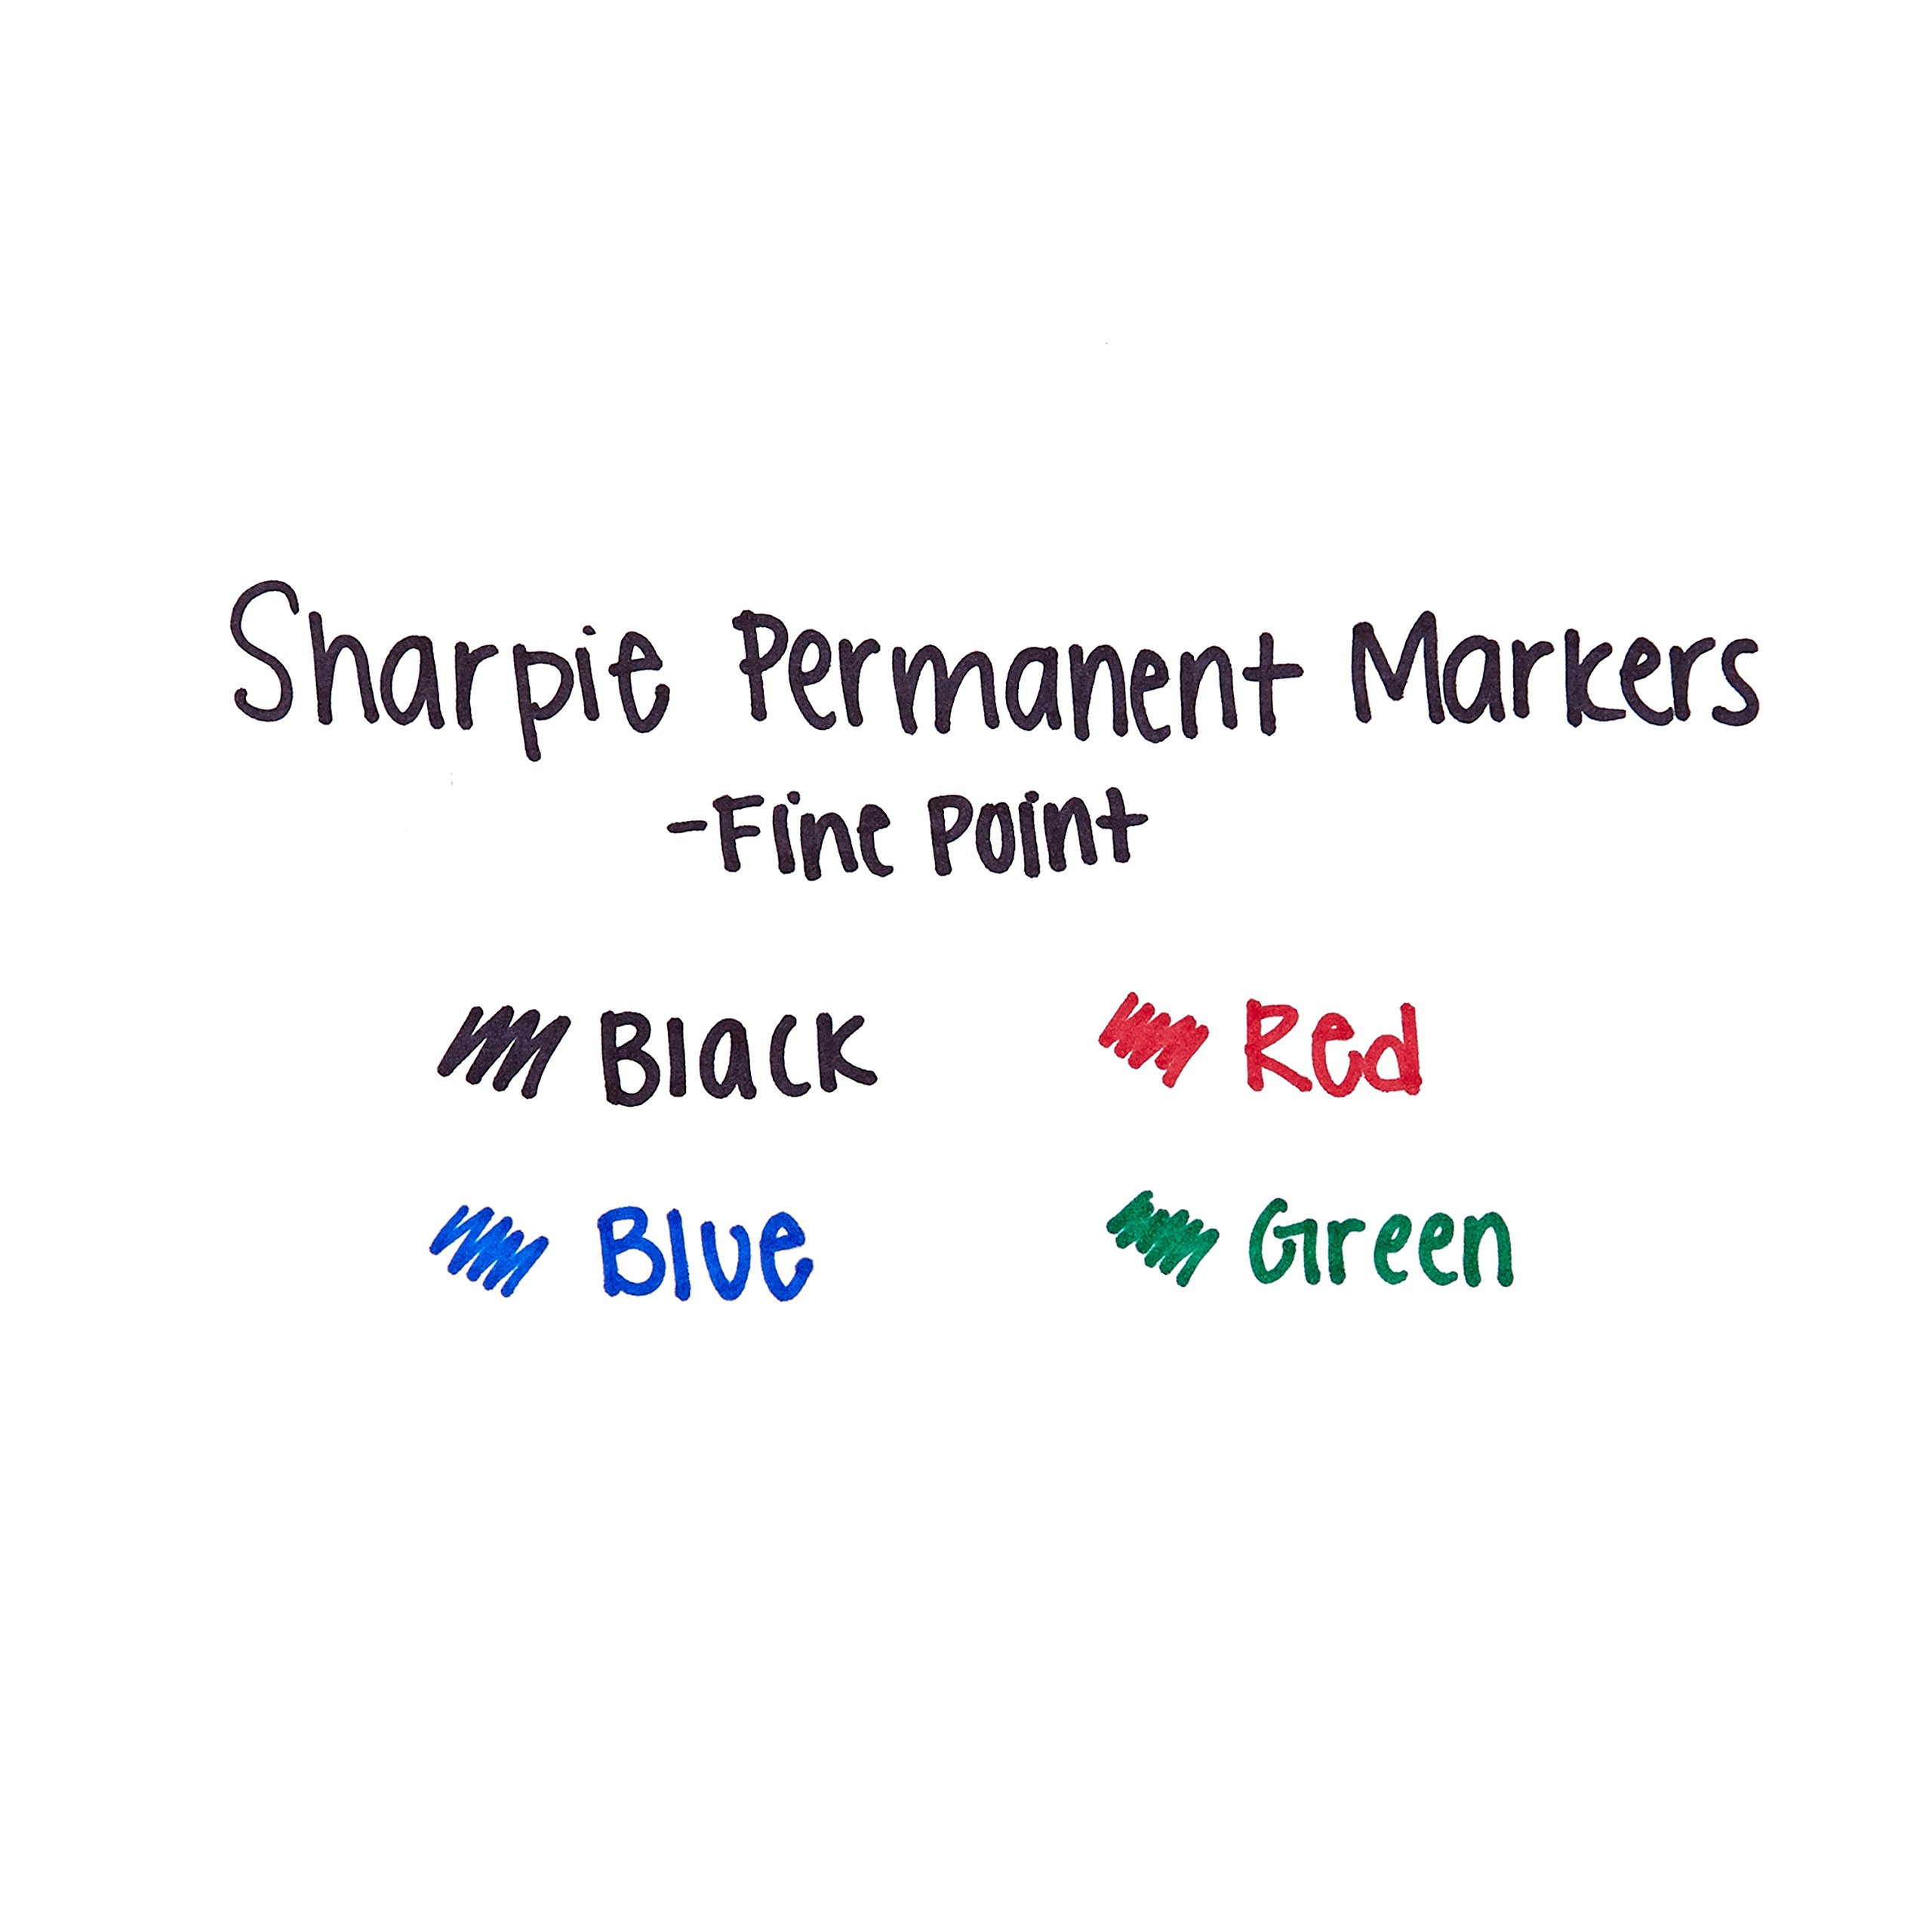 Sharpie Permanent Markers, Fine Point, Assorted Colors, 36-Pack (1921559) by Sharpie (Image #4)